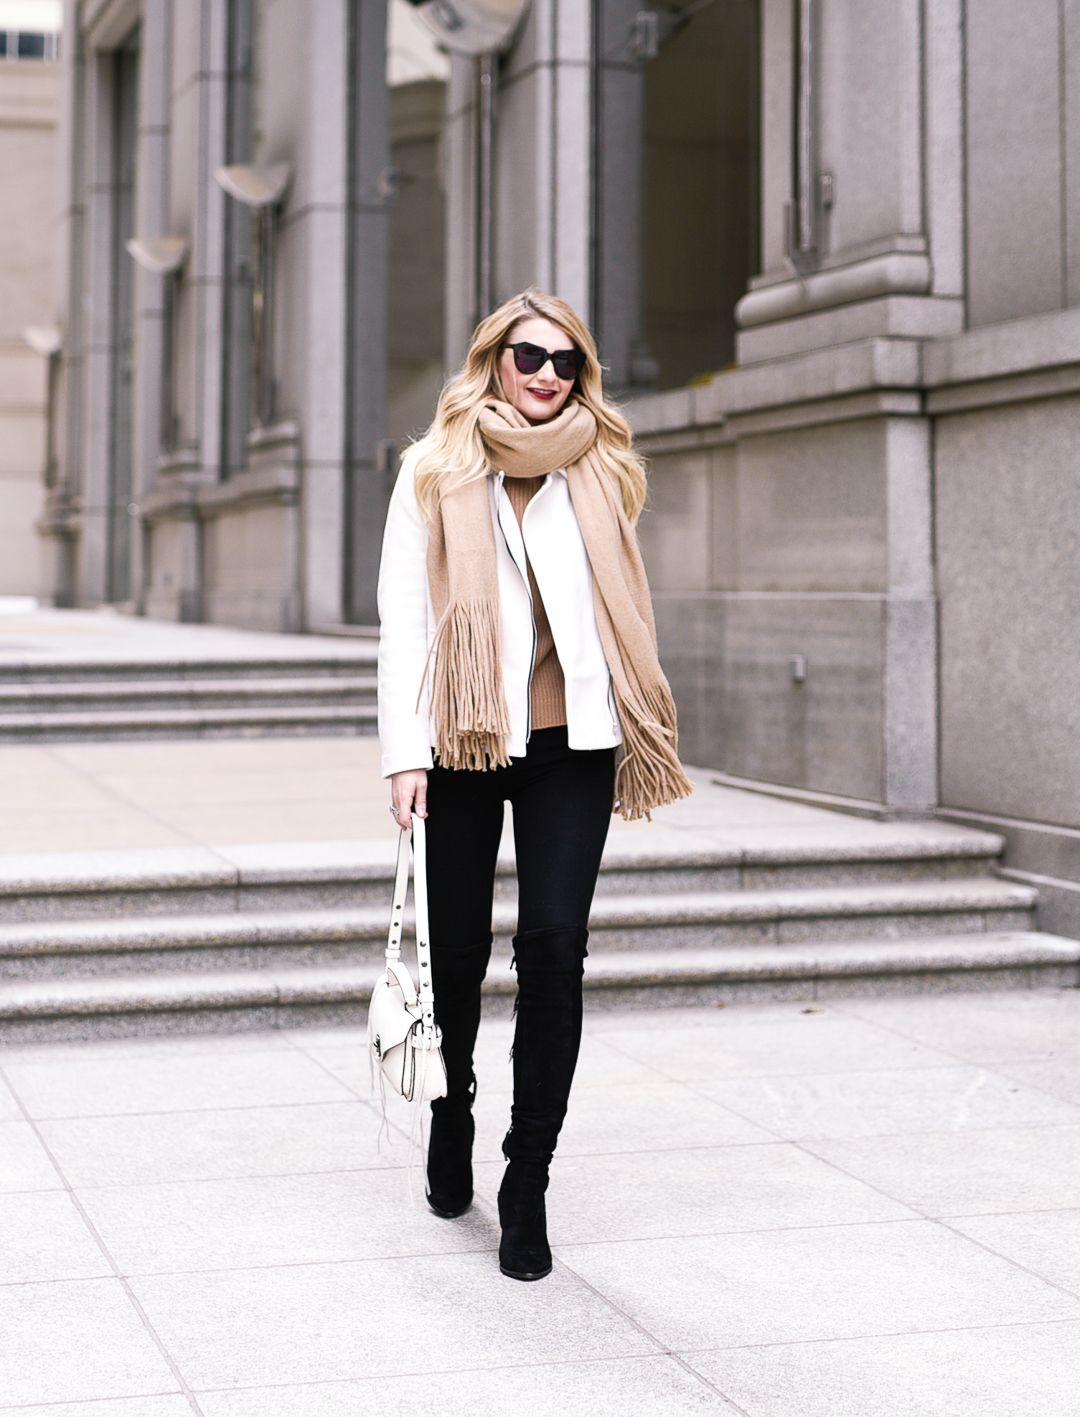 The best black over the knee boots and white suede moto jacket.